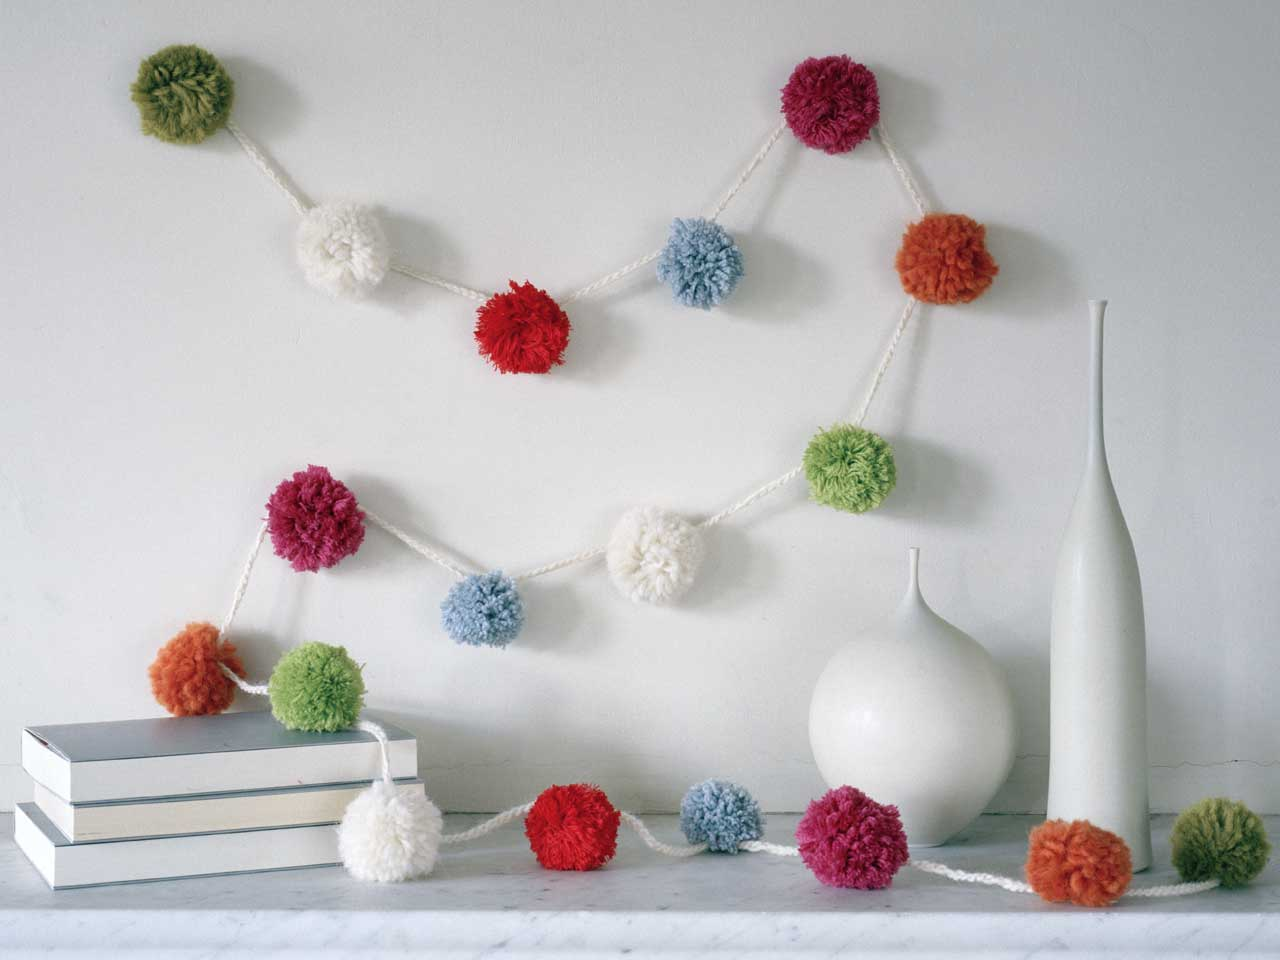 When you have enough pom poms you can make a garland by threading the pom poms together with ribbon or a crochet chain.